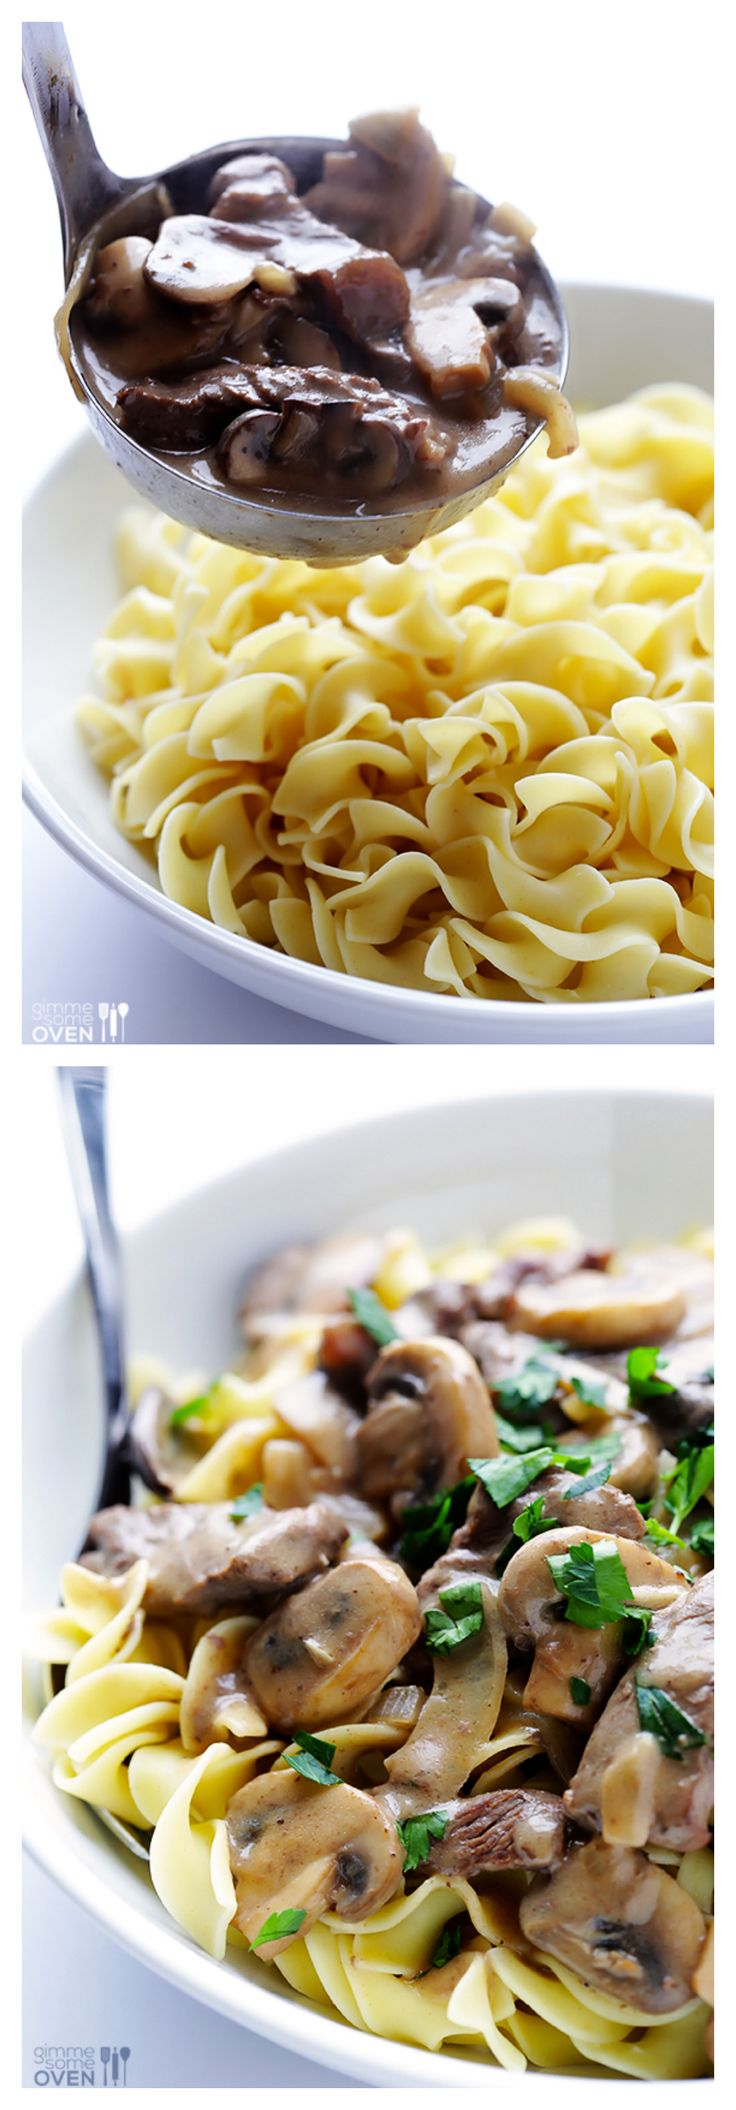 Easy Beef Stroganoff -- simple to make, yet so flavorful and delicious | gimmesomeoven.com